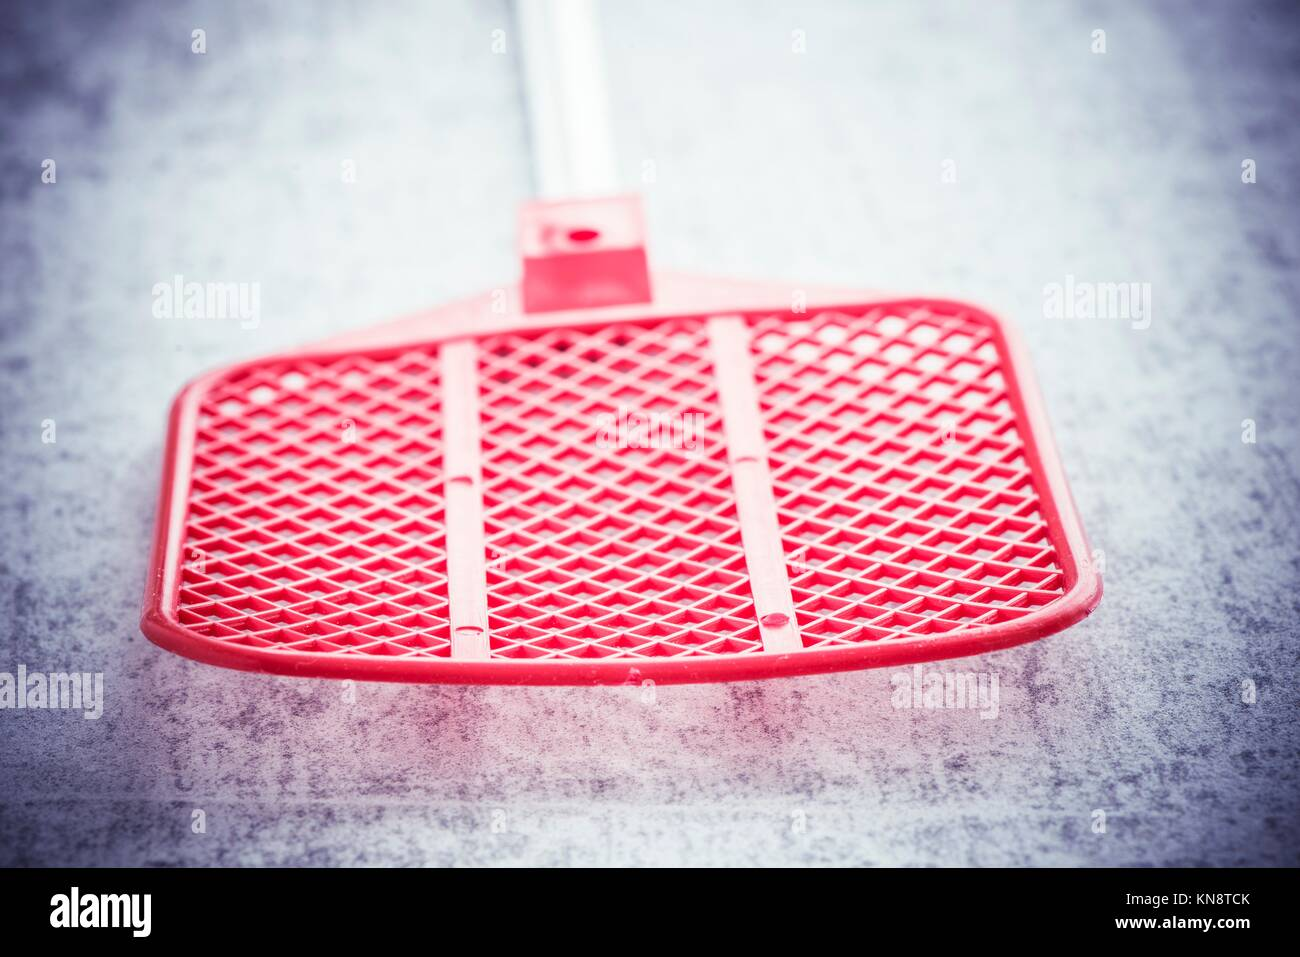 Fly swatter on stone table. Concept of exterminating bugs and insects. - Stock Image